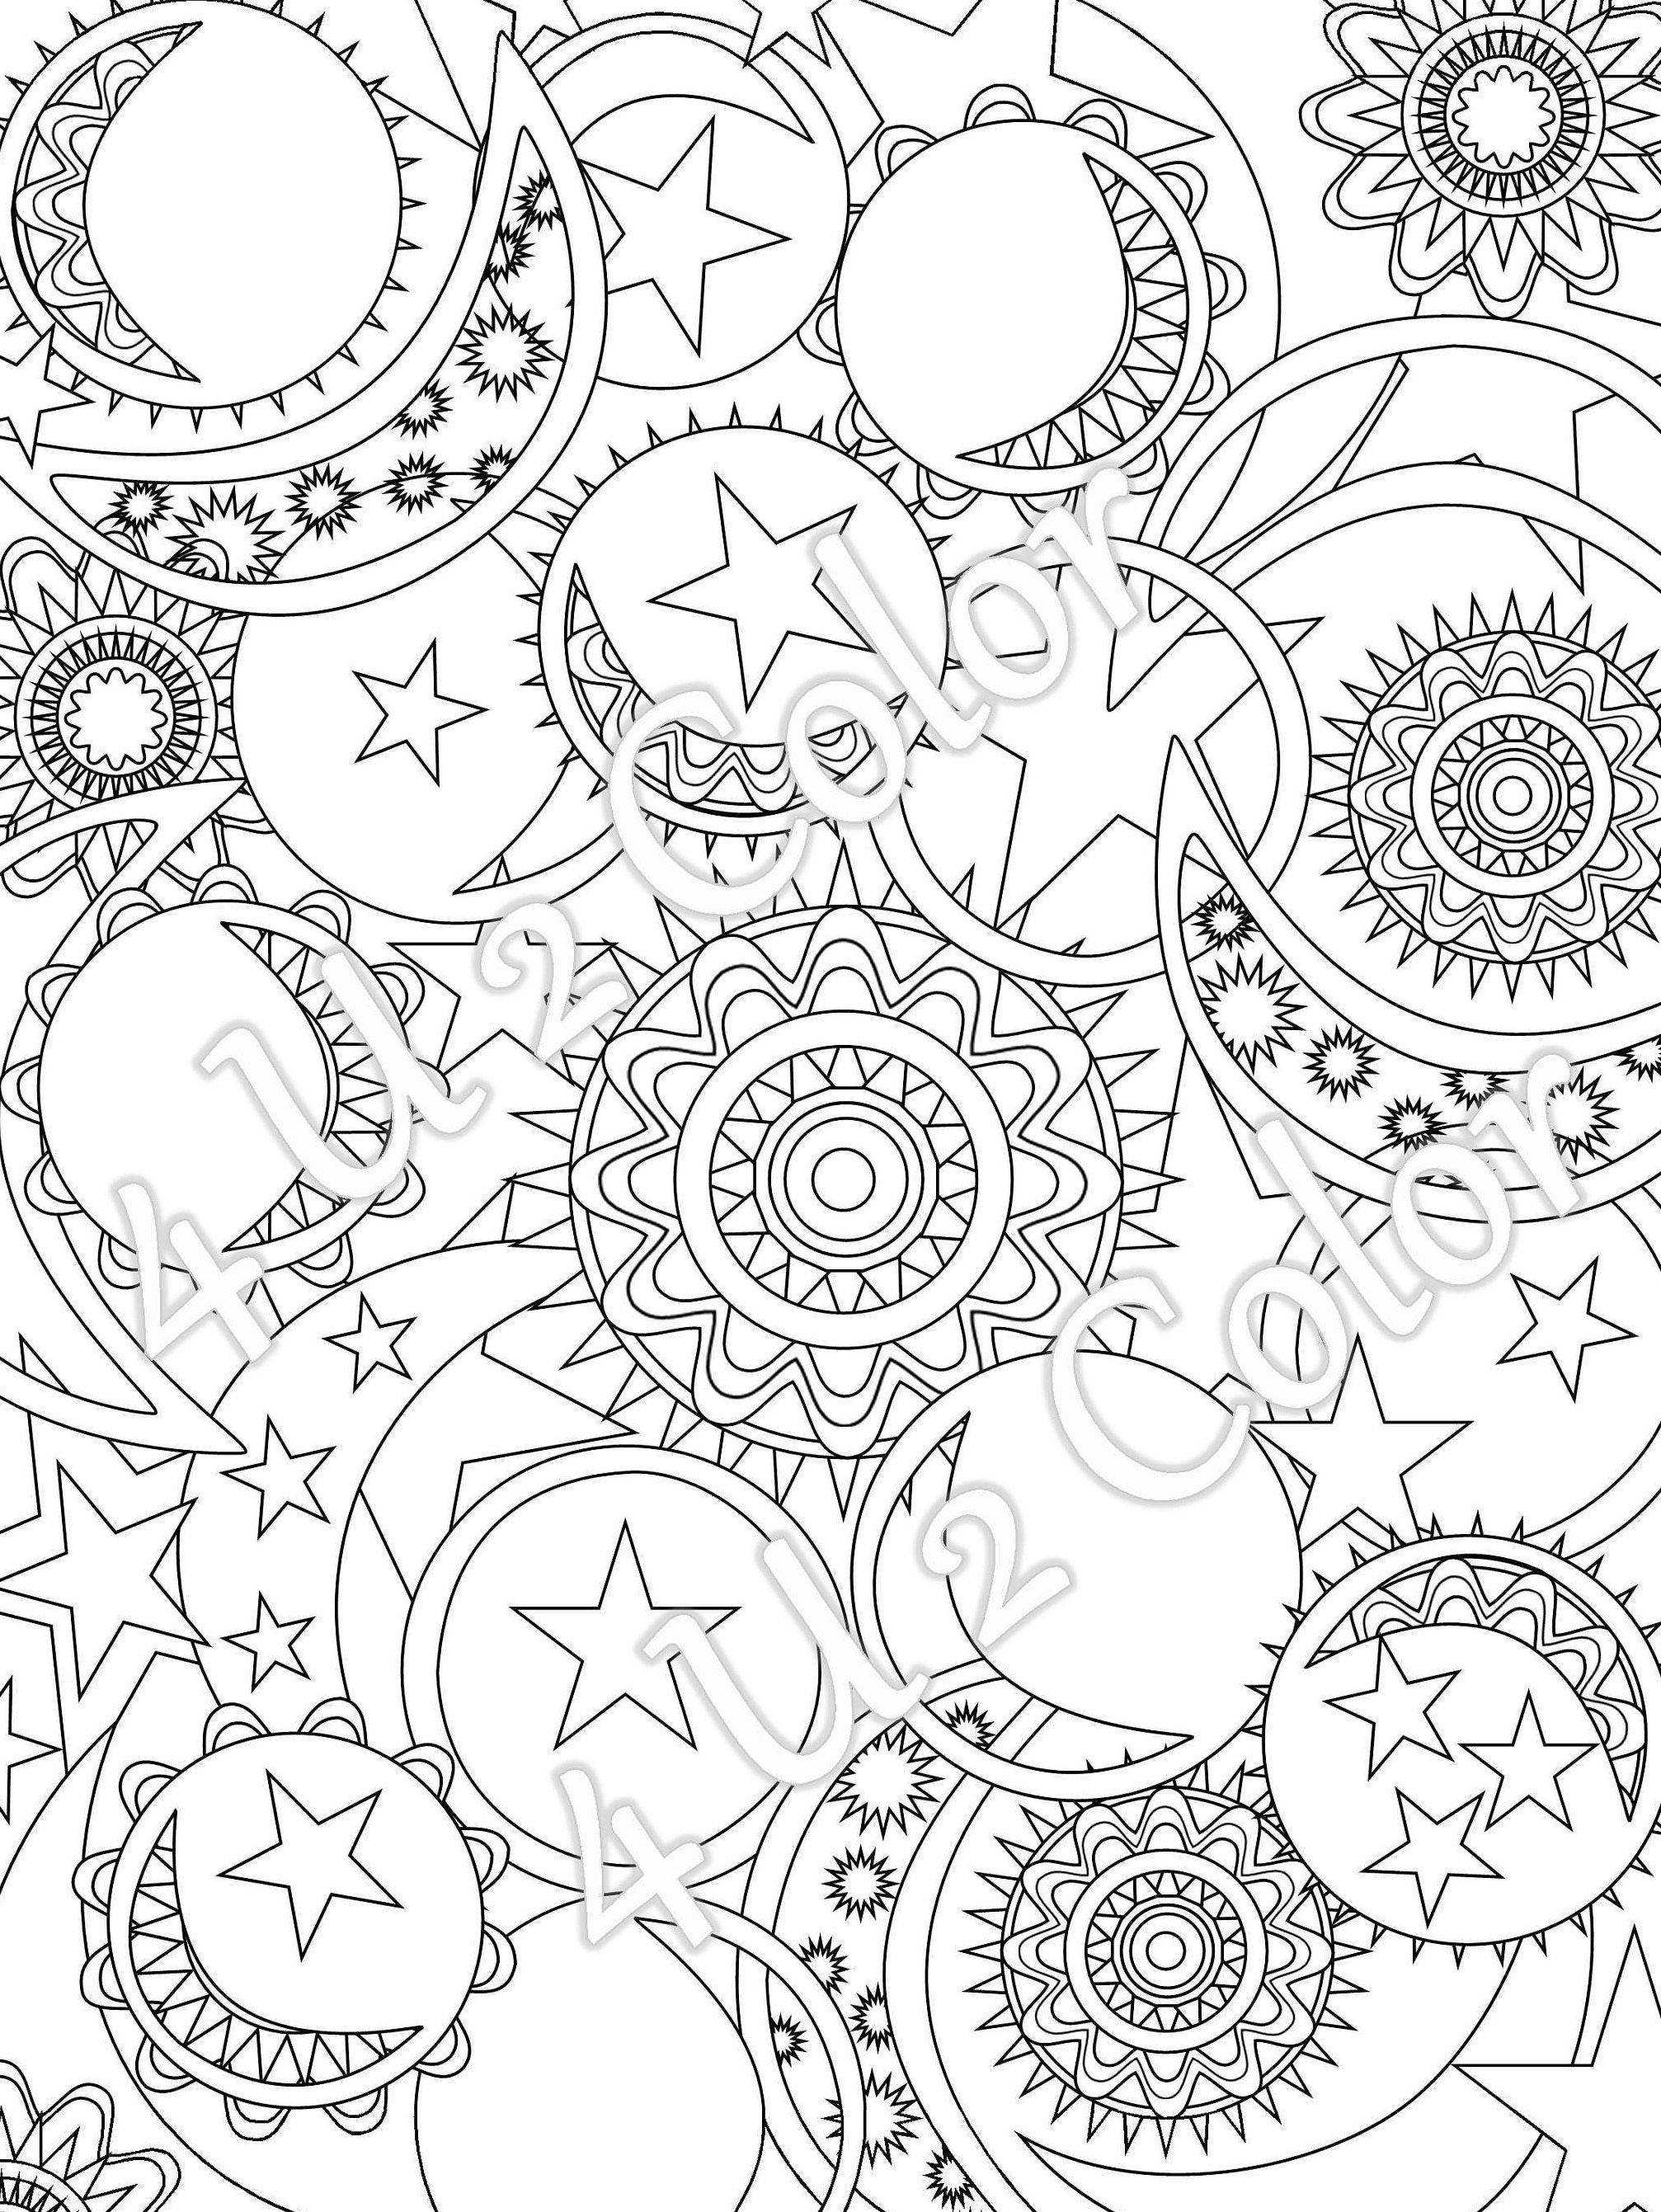 Sun Moon Stars 1 coloring page sun moon stars patterns full